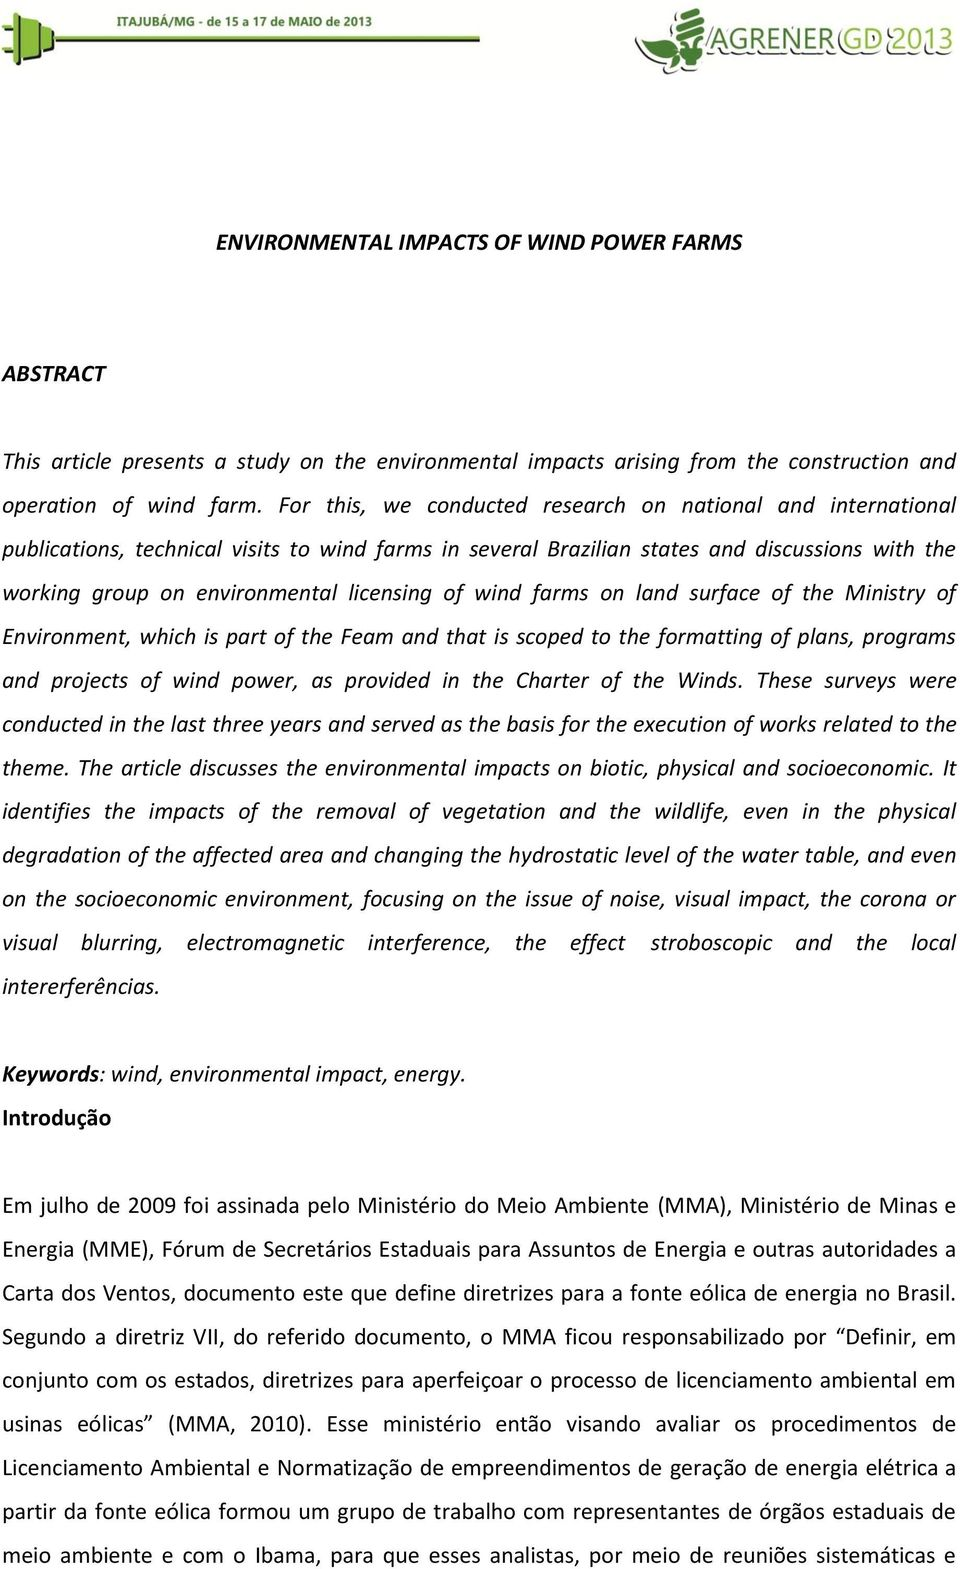 licensing of wind farms on land surface of the Ministry of Environment, which is part of the Feam and that is scoped to the formatting of plans, programs and projects of wind power, as provided in